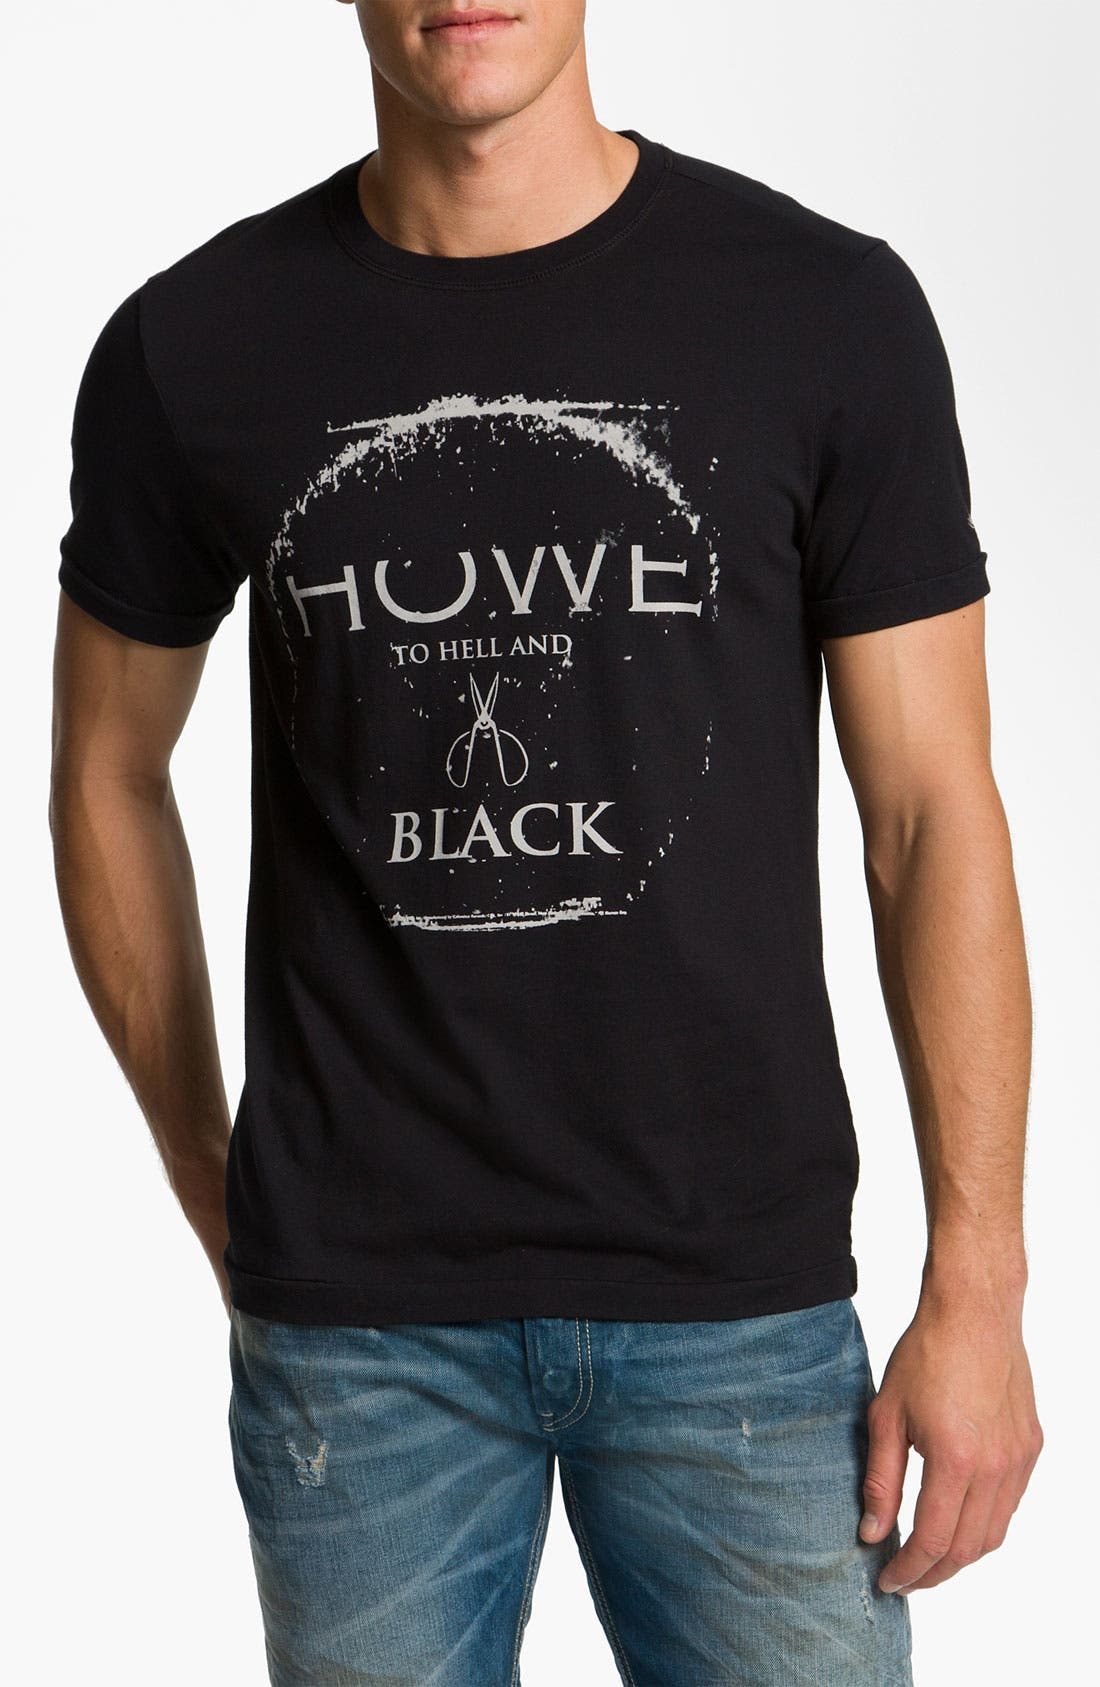 Main Image - Howe 'To Hell and Black' Graphic T-Shirt